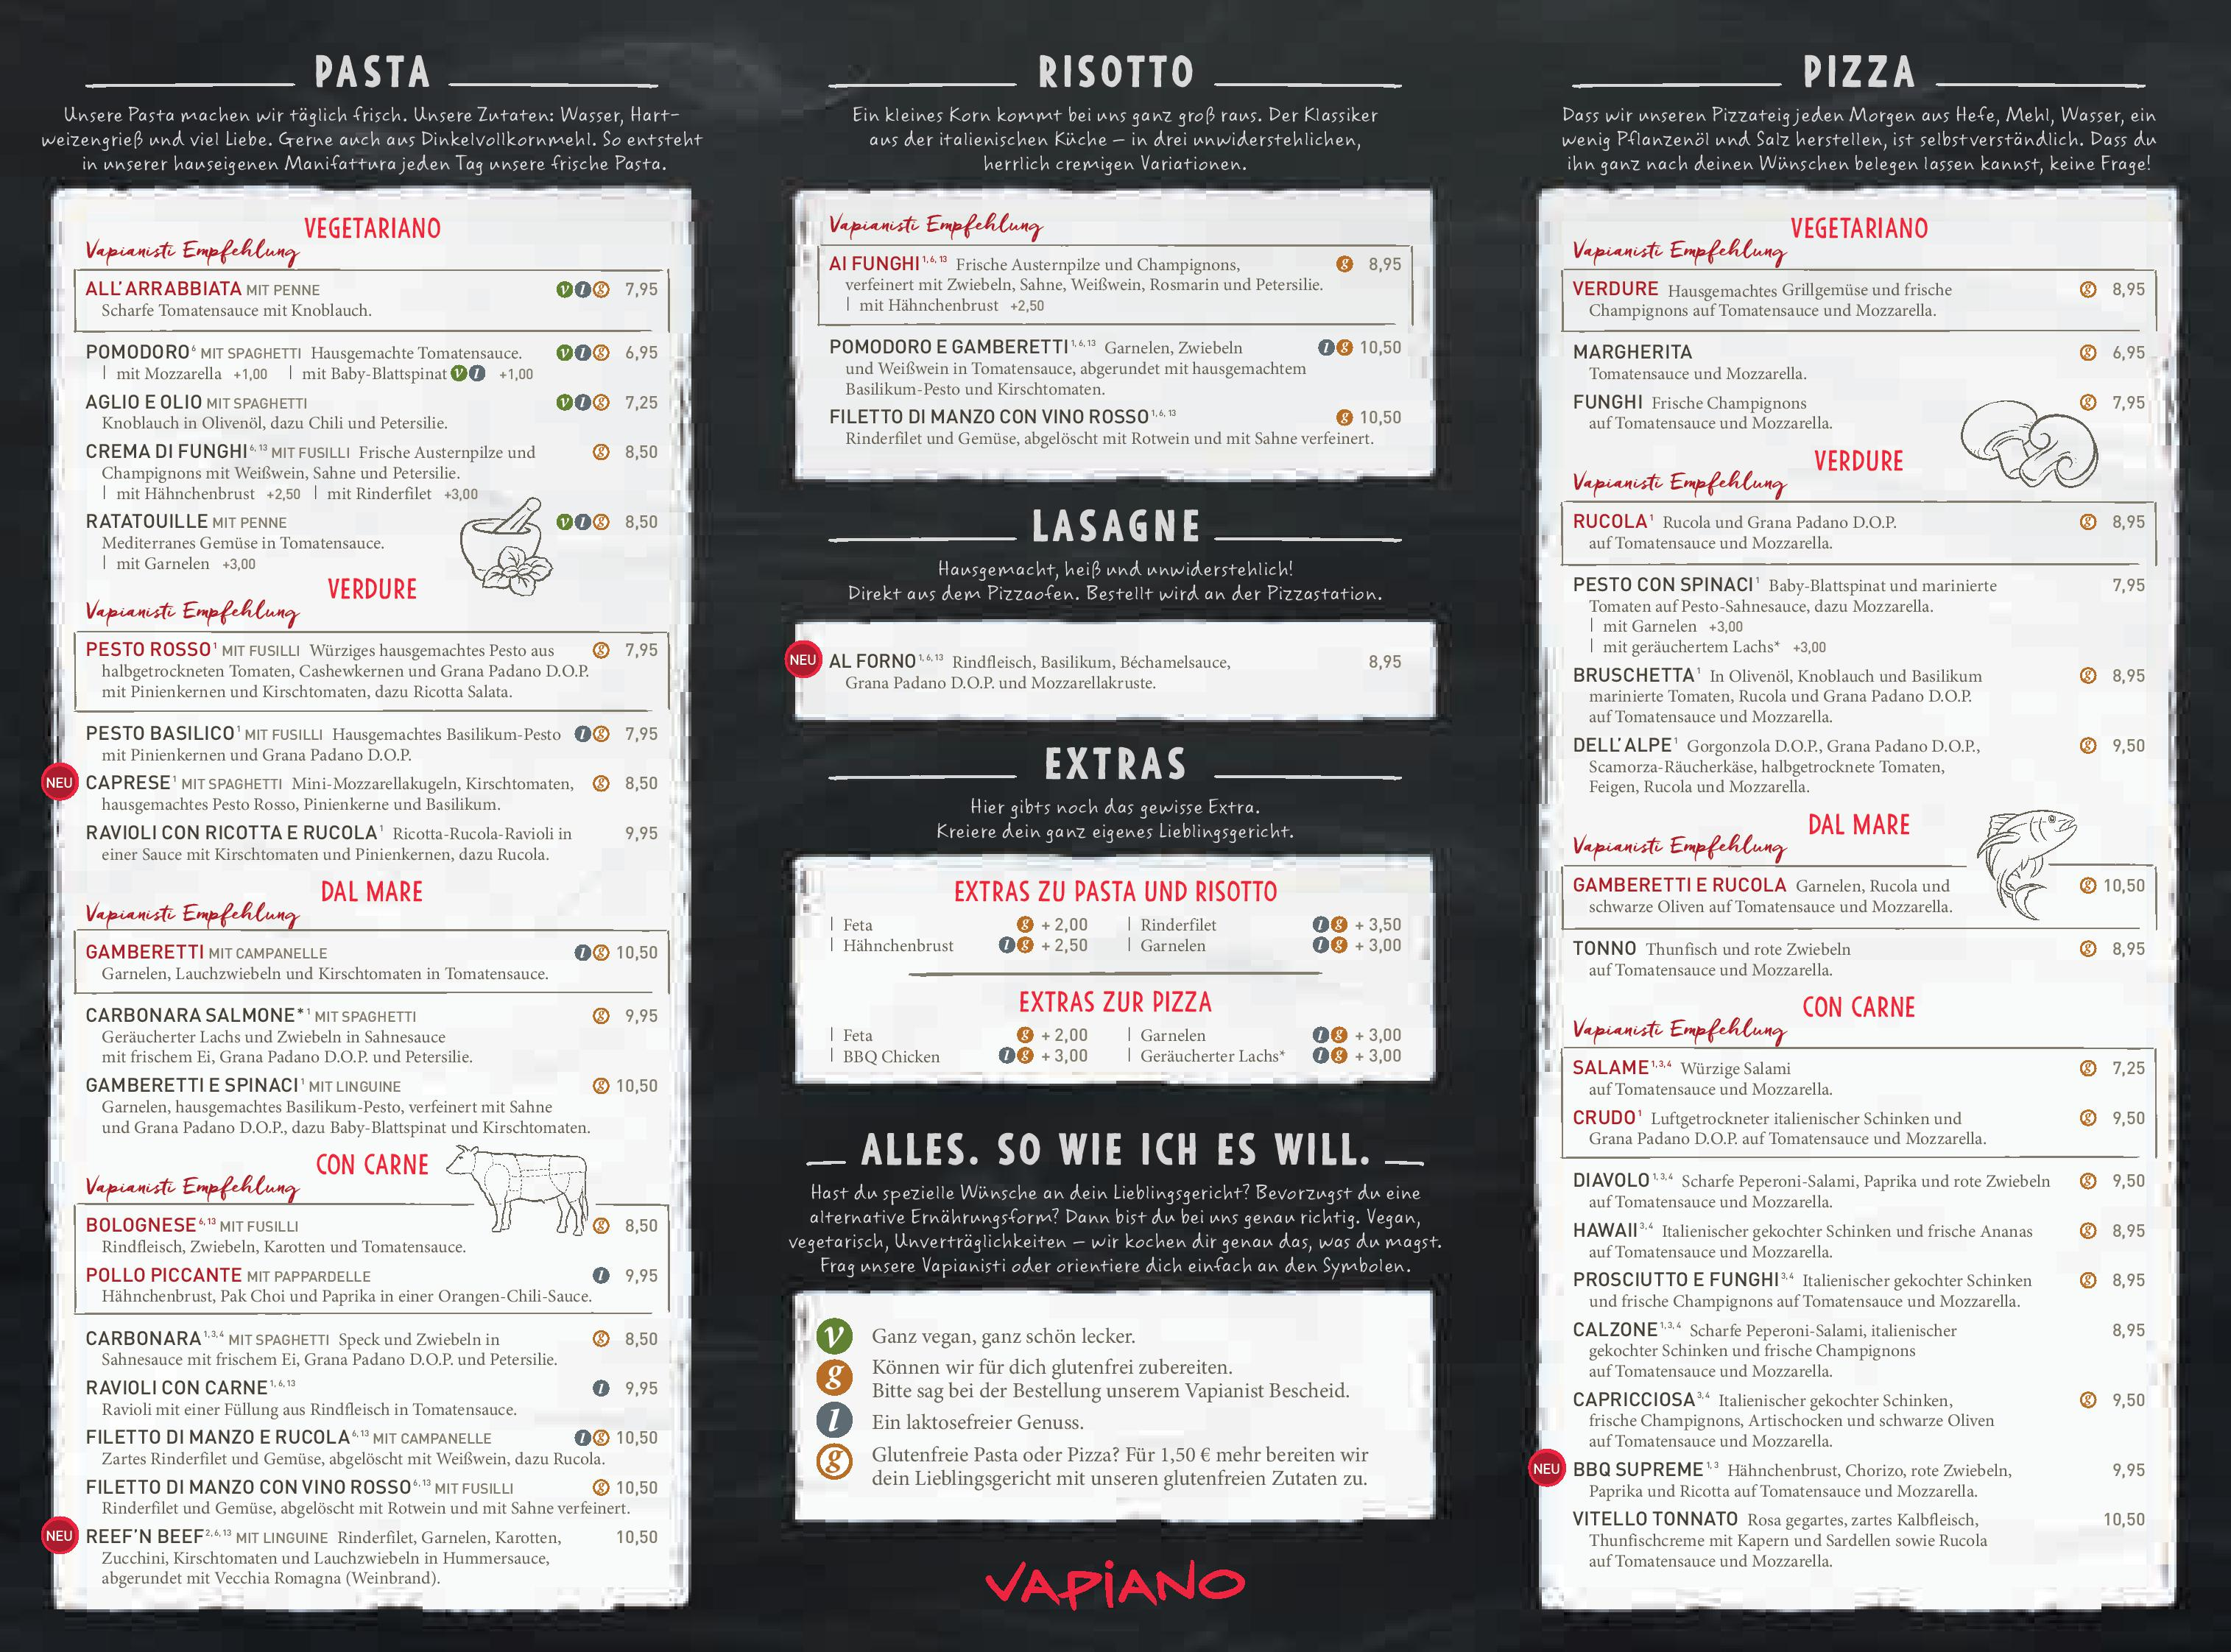 The Stand Restaurant Menu